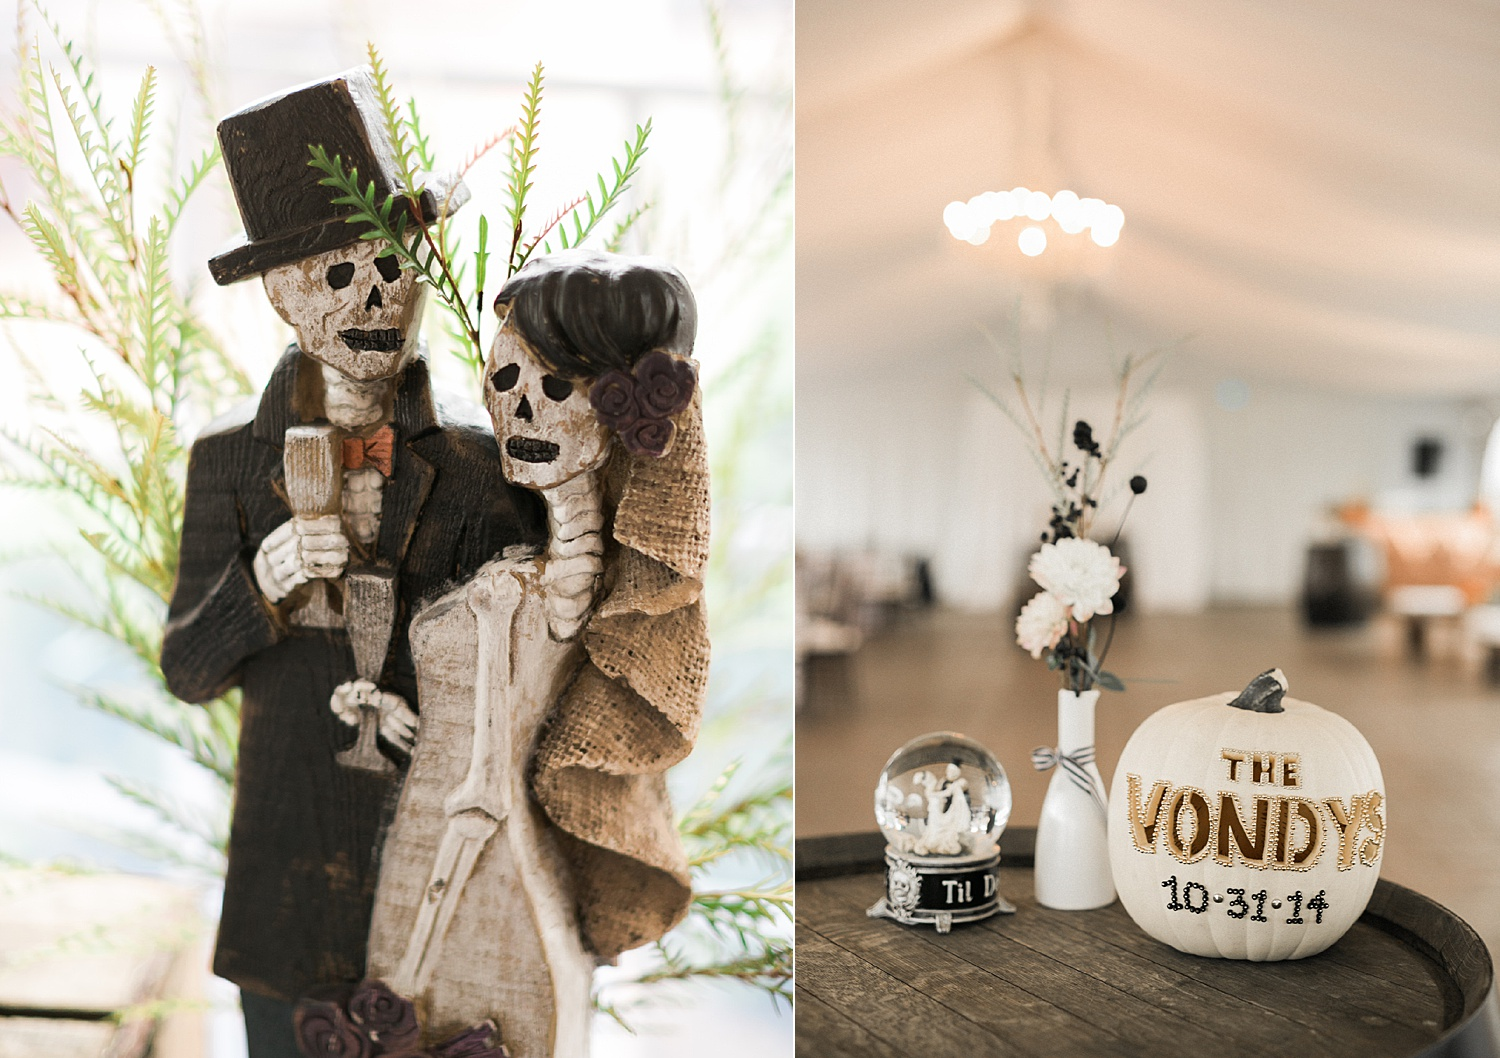 the vondys | wedding day tips | los angeles wedding photographer